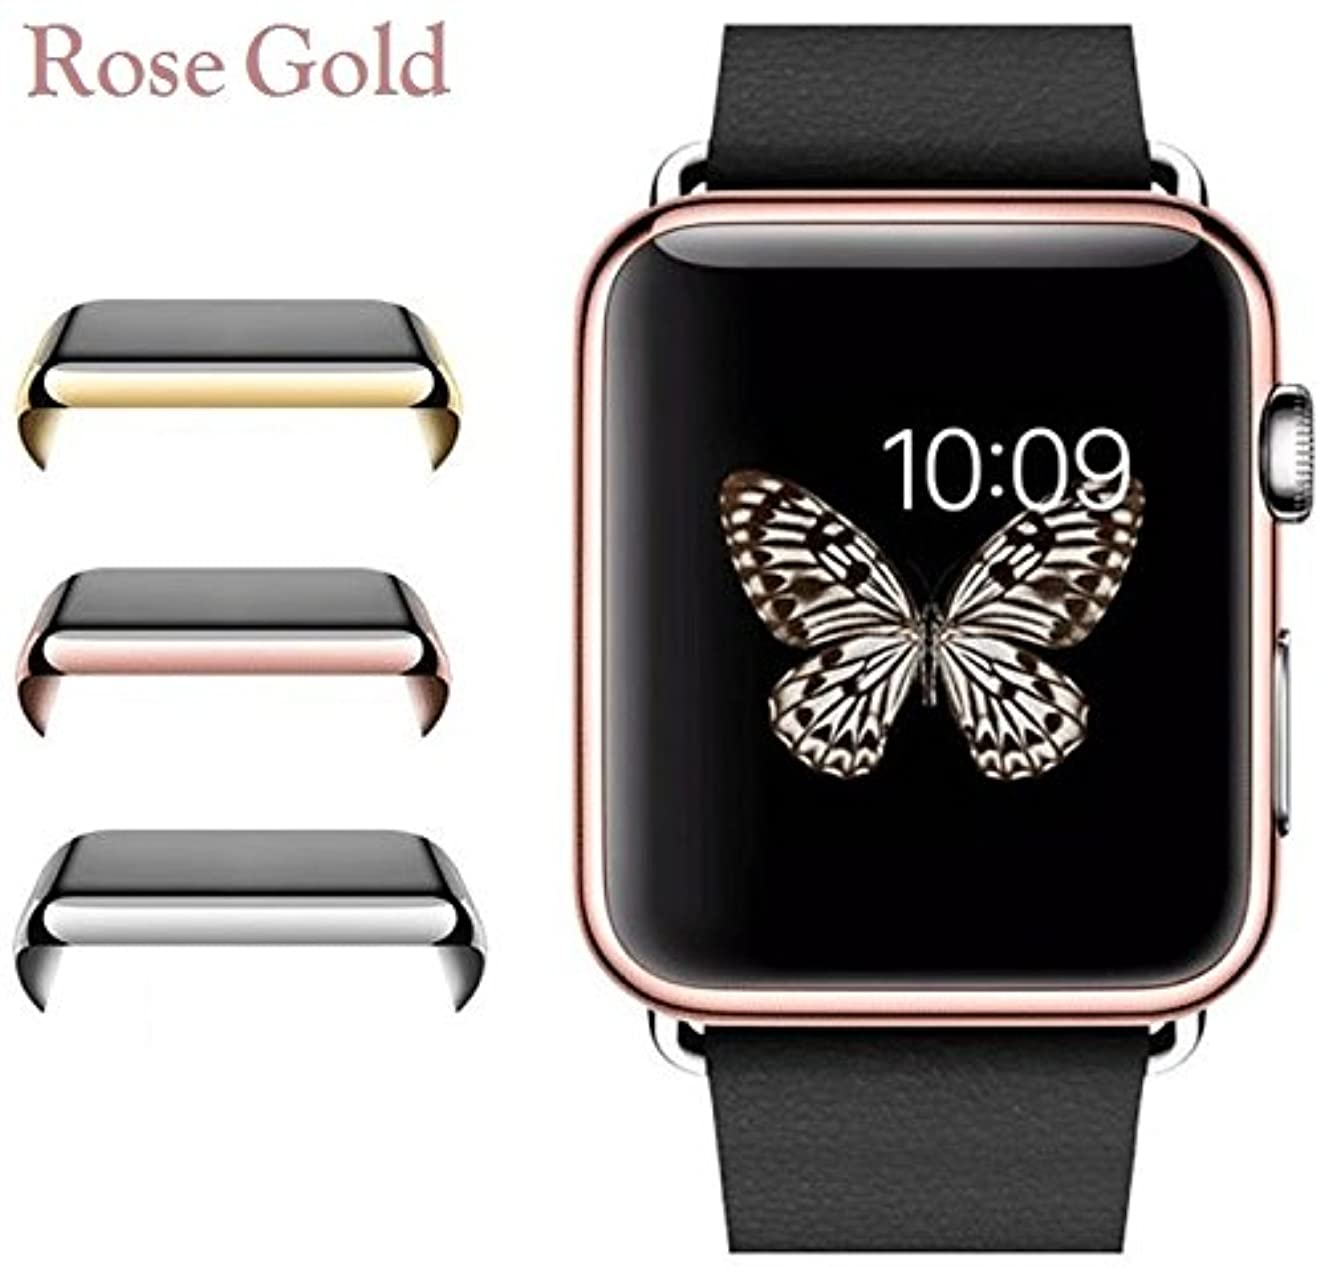 Josi Minea Apple Watch [42mm] Protective Snap-On Case with Built-in Clear Glass Screen Protector - Anti-Scratch & Shockproof Shield Guard Full Cover for Apple Watch Series 2-42mm [ Rose Gold ]